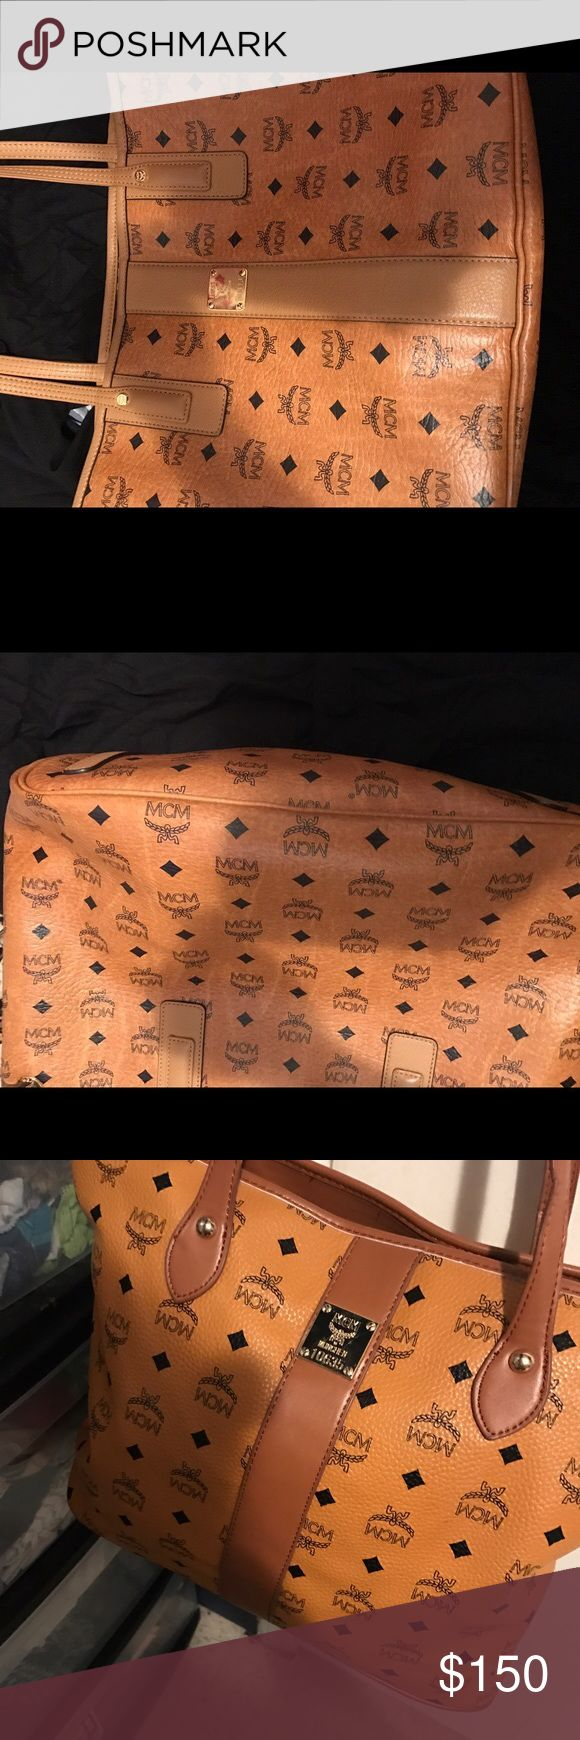 Mcm leather bag Mcm leather bag for sale without pouch.,. Willing to meet up. Neg MCM Bags Totes